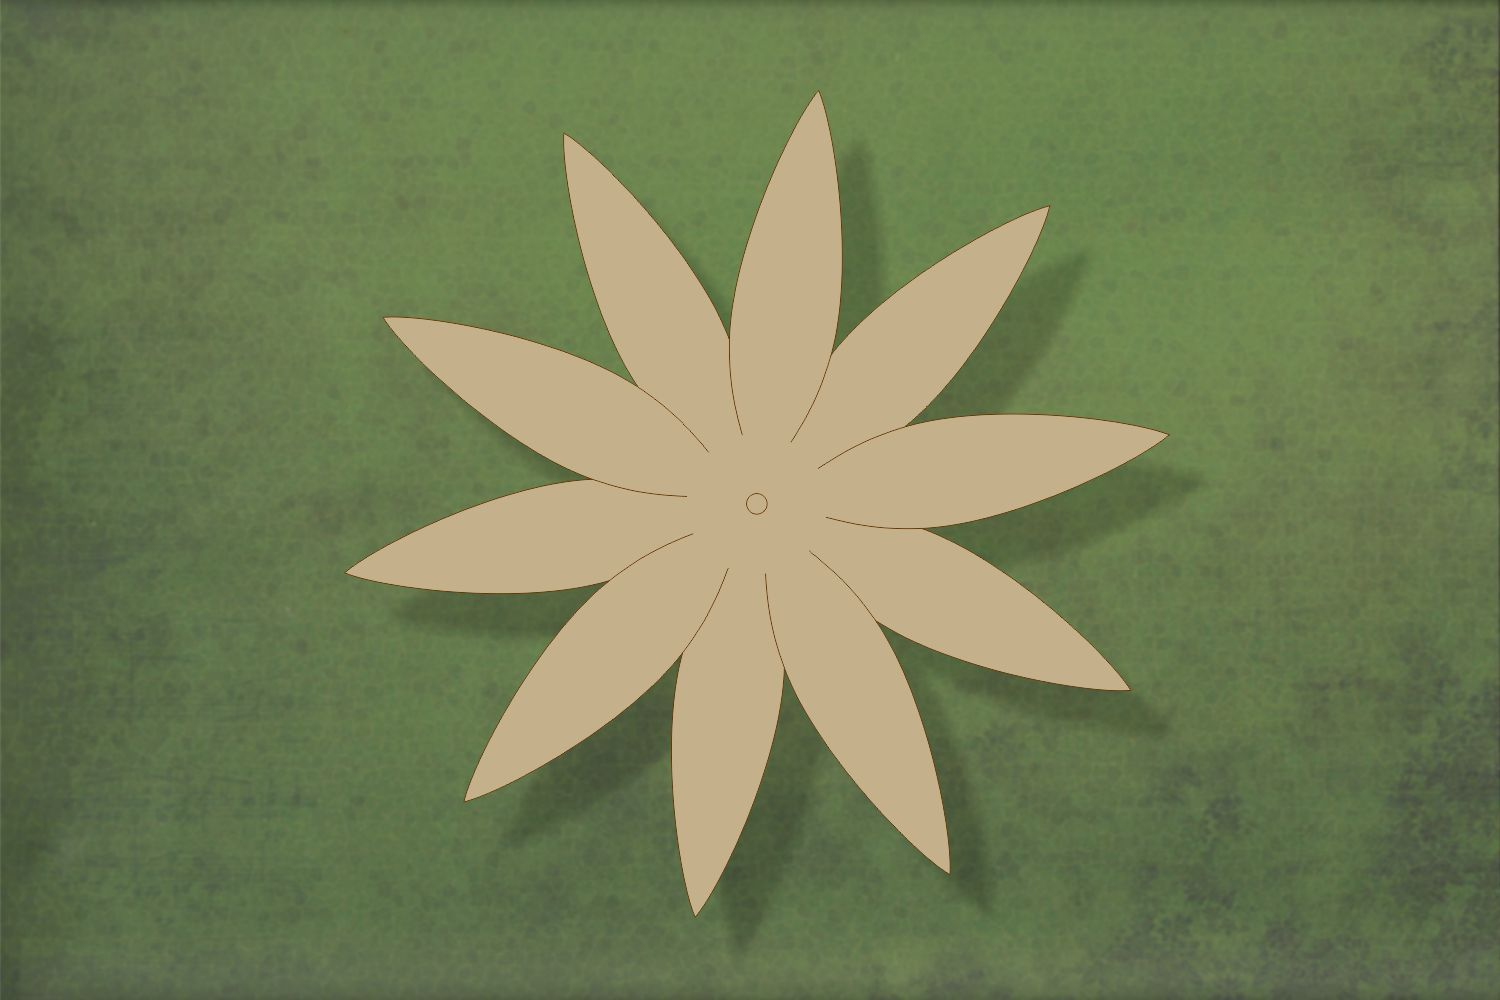 Laser cut, blank wooden Flower 10 petal shape for craft